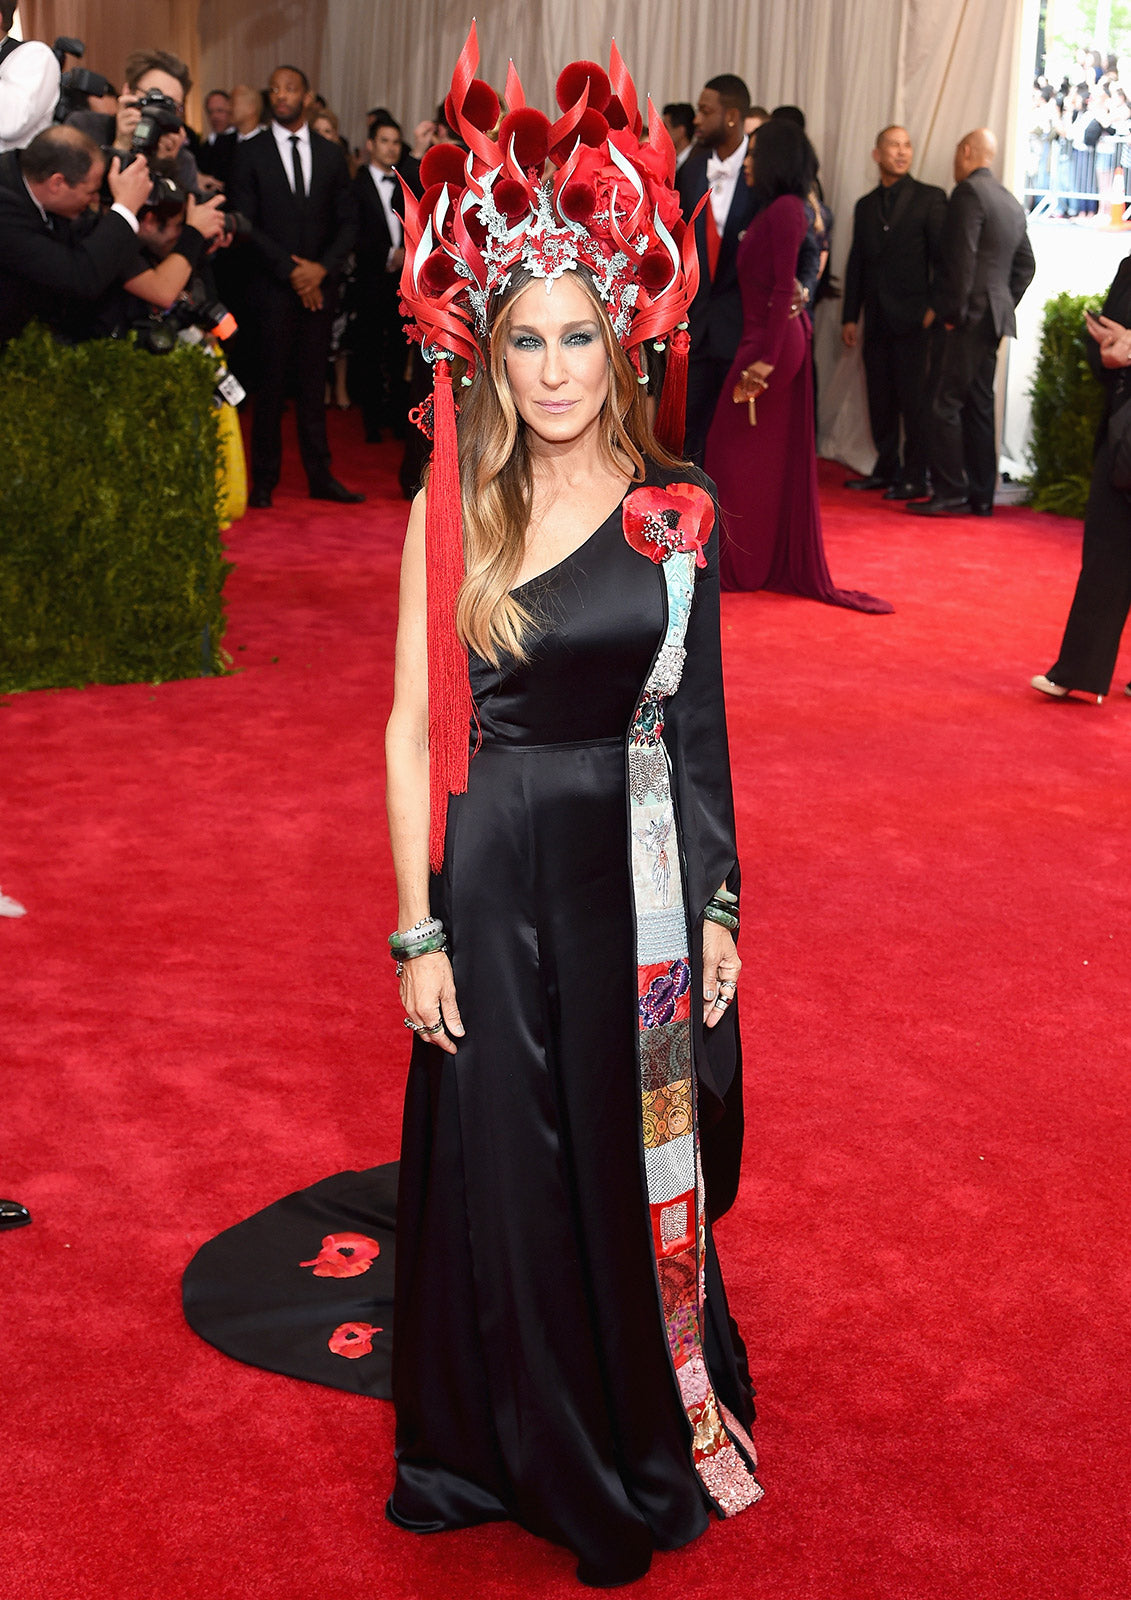 Sarah Jessica Parker steals the show again this year in another elaborate Philip Treacy hat.